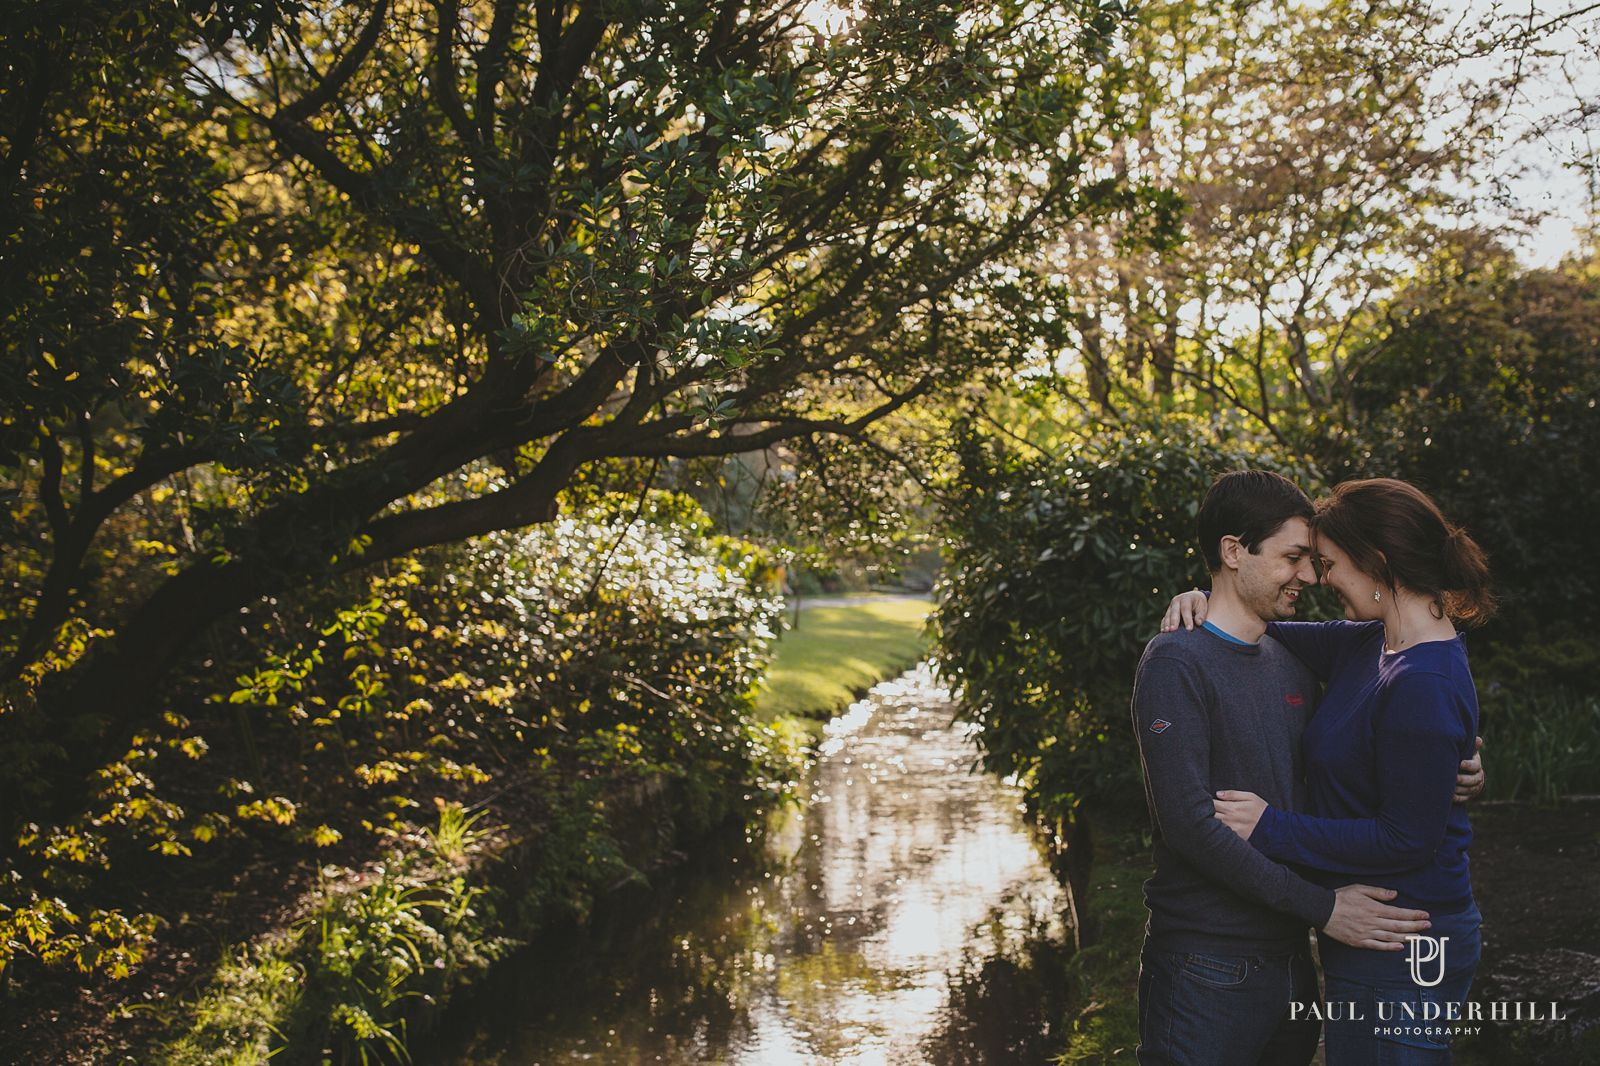 Pre-wedding photography in Bournemouth